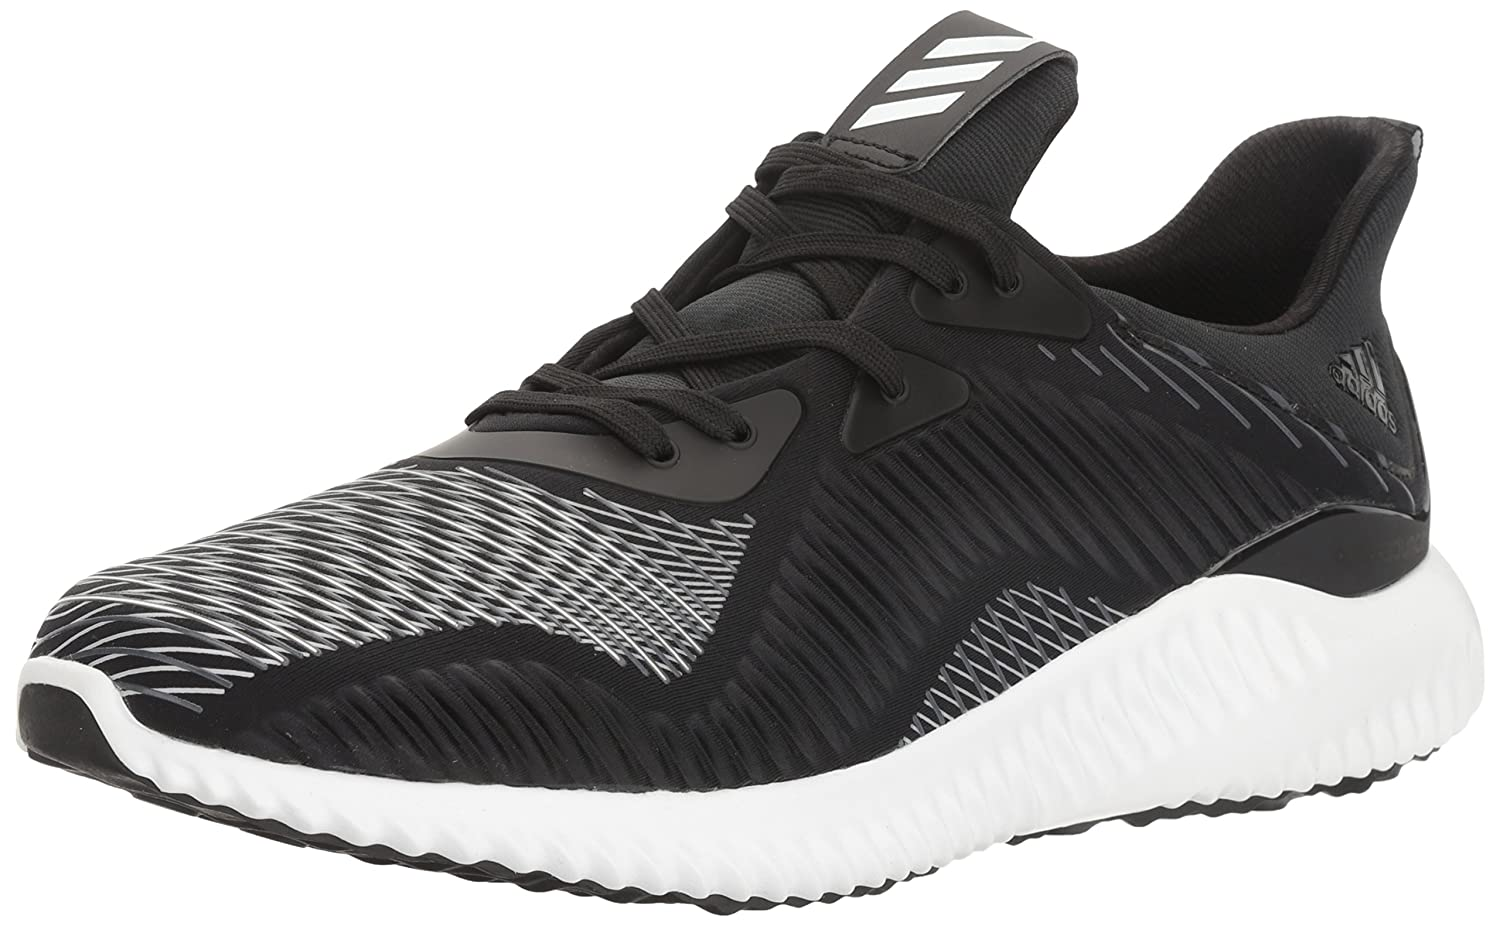 online retailer 6ad9f 90ea6 Amazon.com  adidas Performance Mens Alphabounce Hpc m Running Shoe  Road  Running